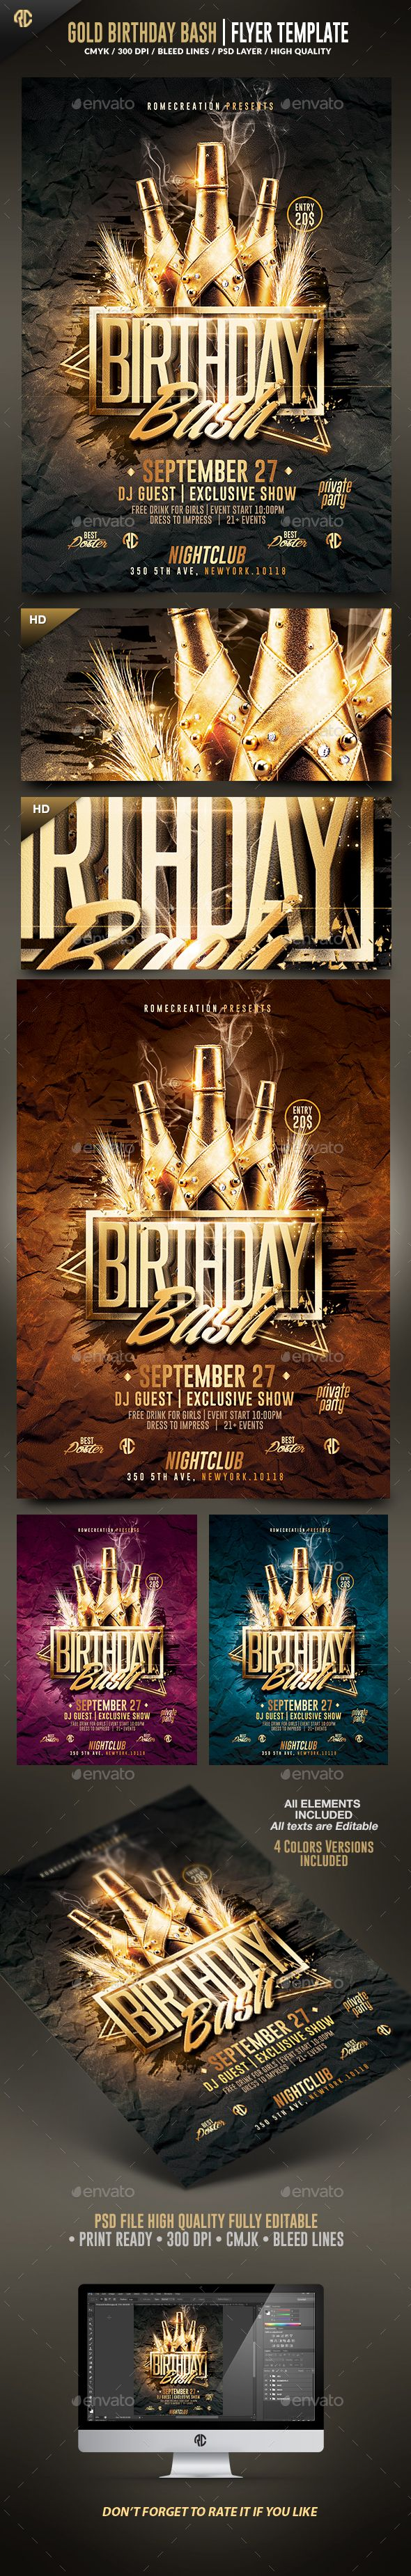 best ideas about creative flyers summer poster gold birthday bash psd flyer template